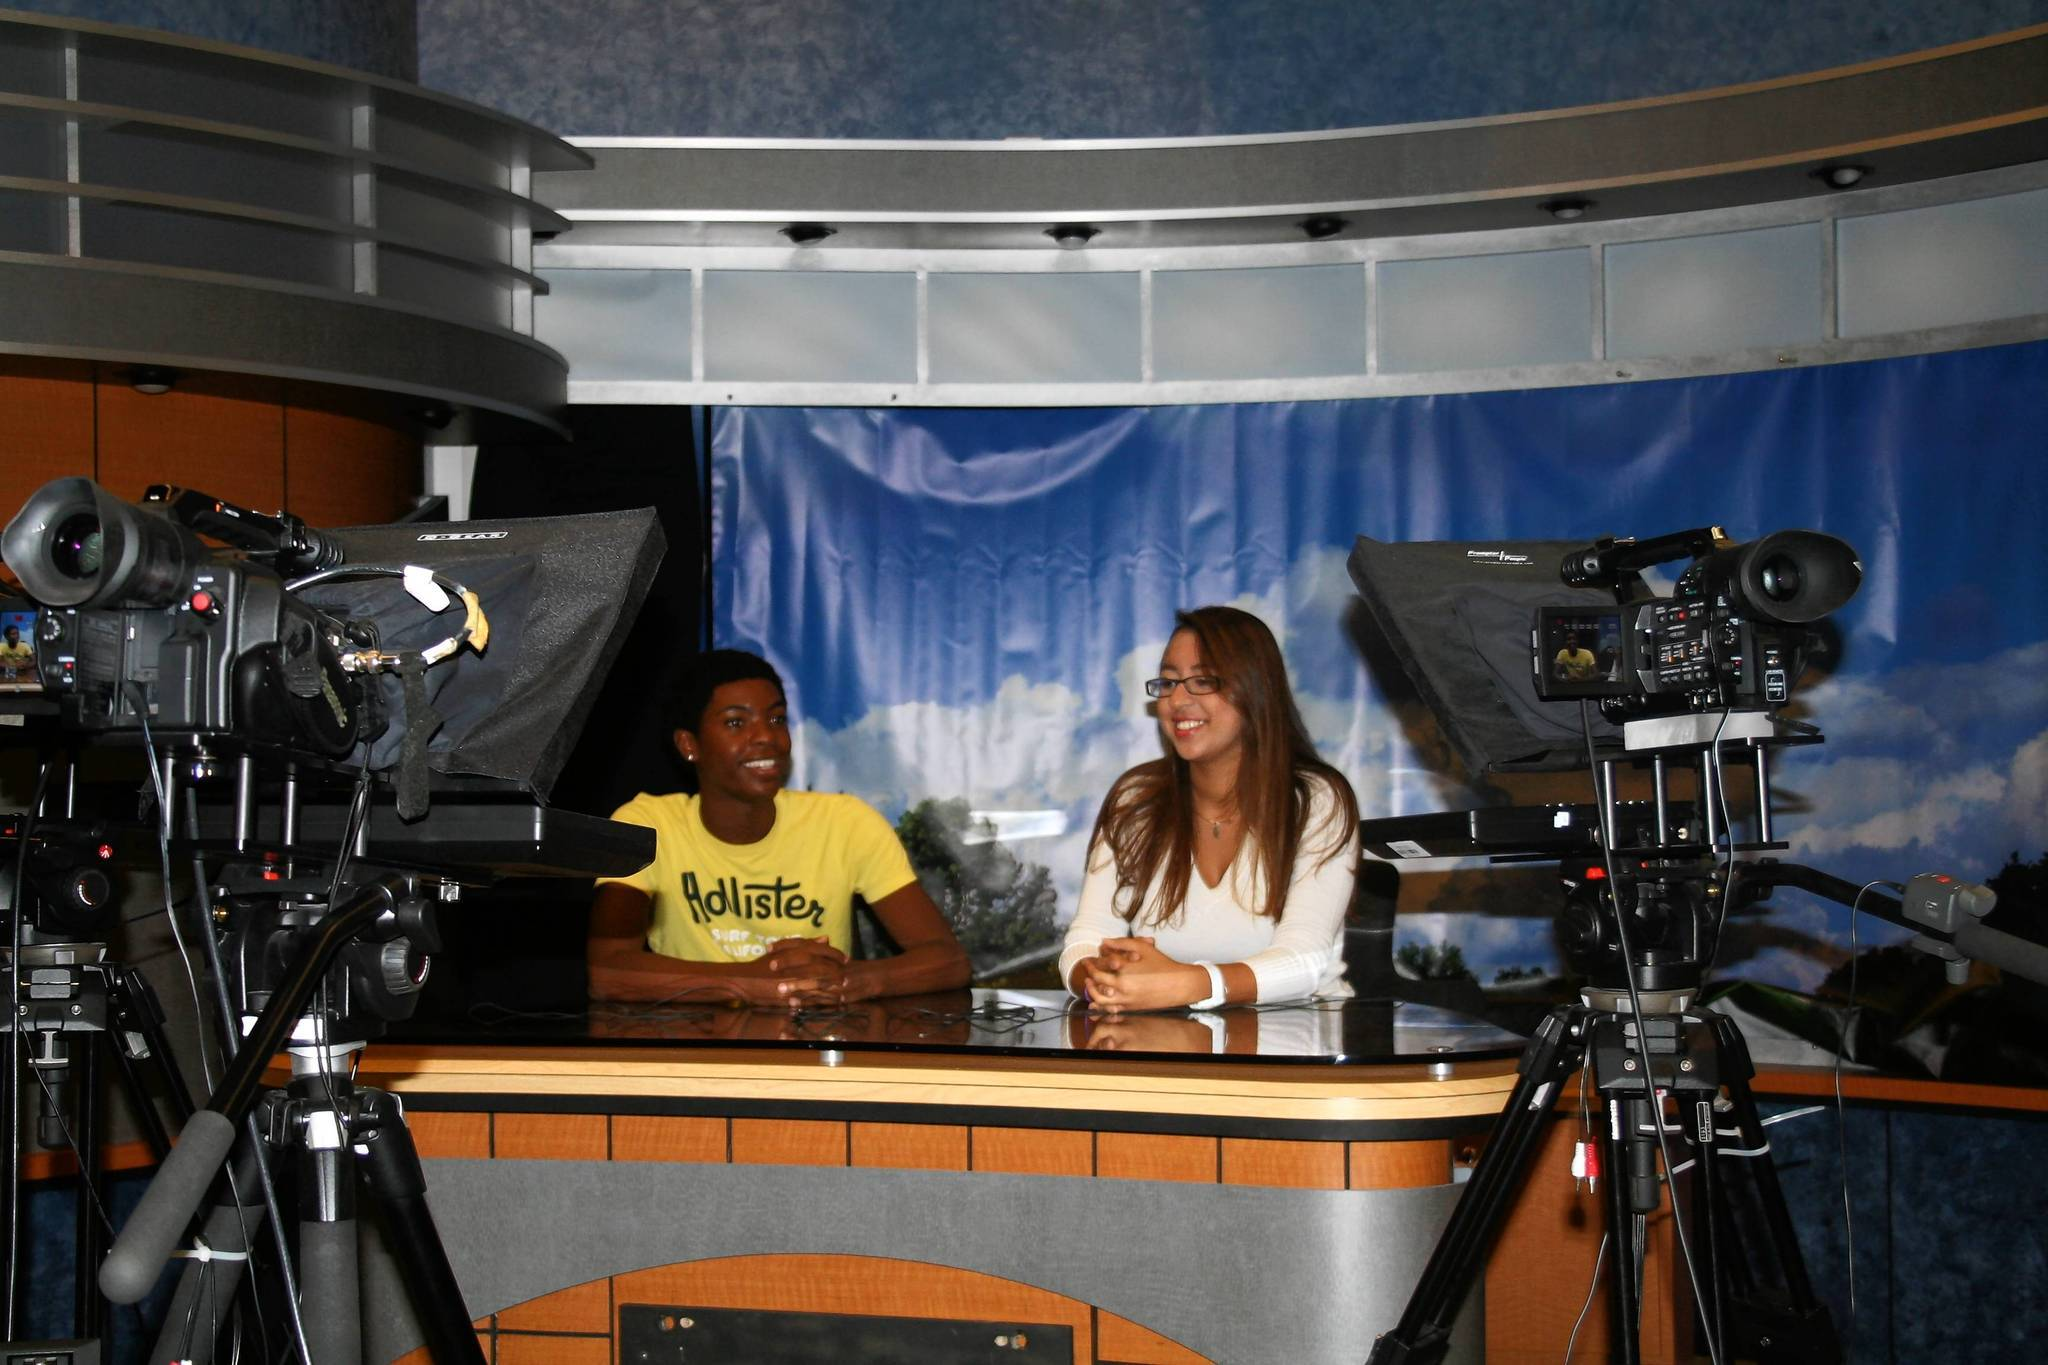 Zaikeus Malone and Abla Alaoui get practice as anchors in West Orange Highs TV production program. The school will take over funding the program after Westside Tech pulled out, but culinary and automotive programs at Apopka High will not survive.